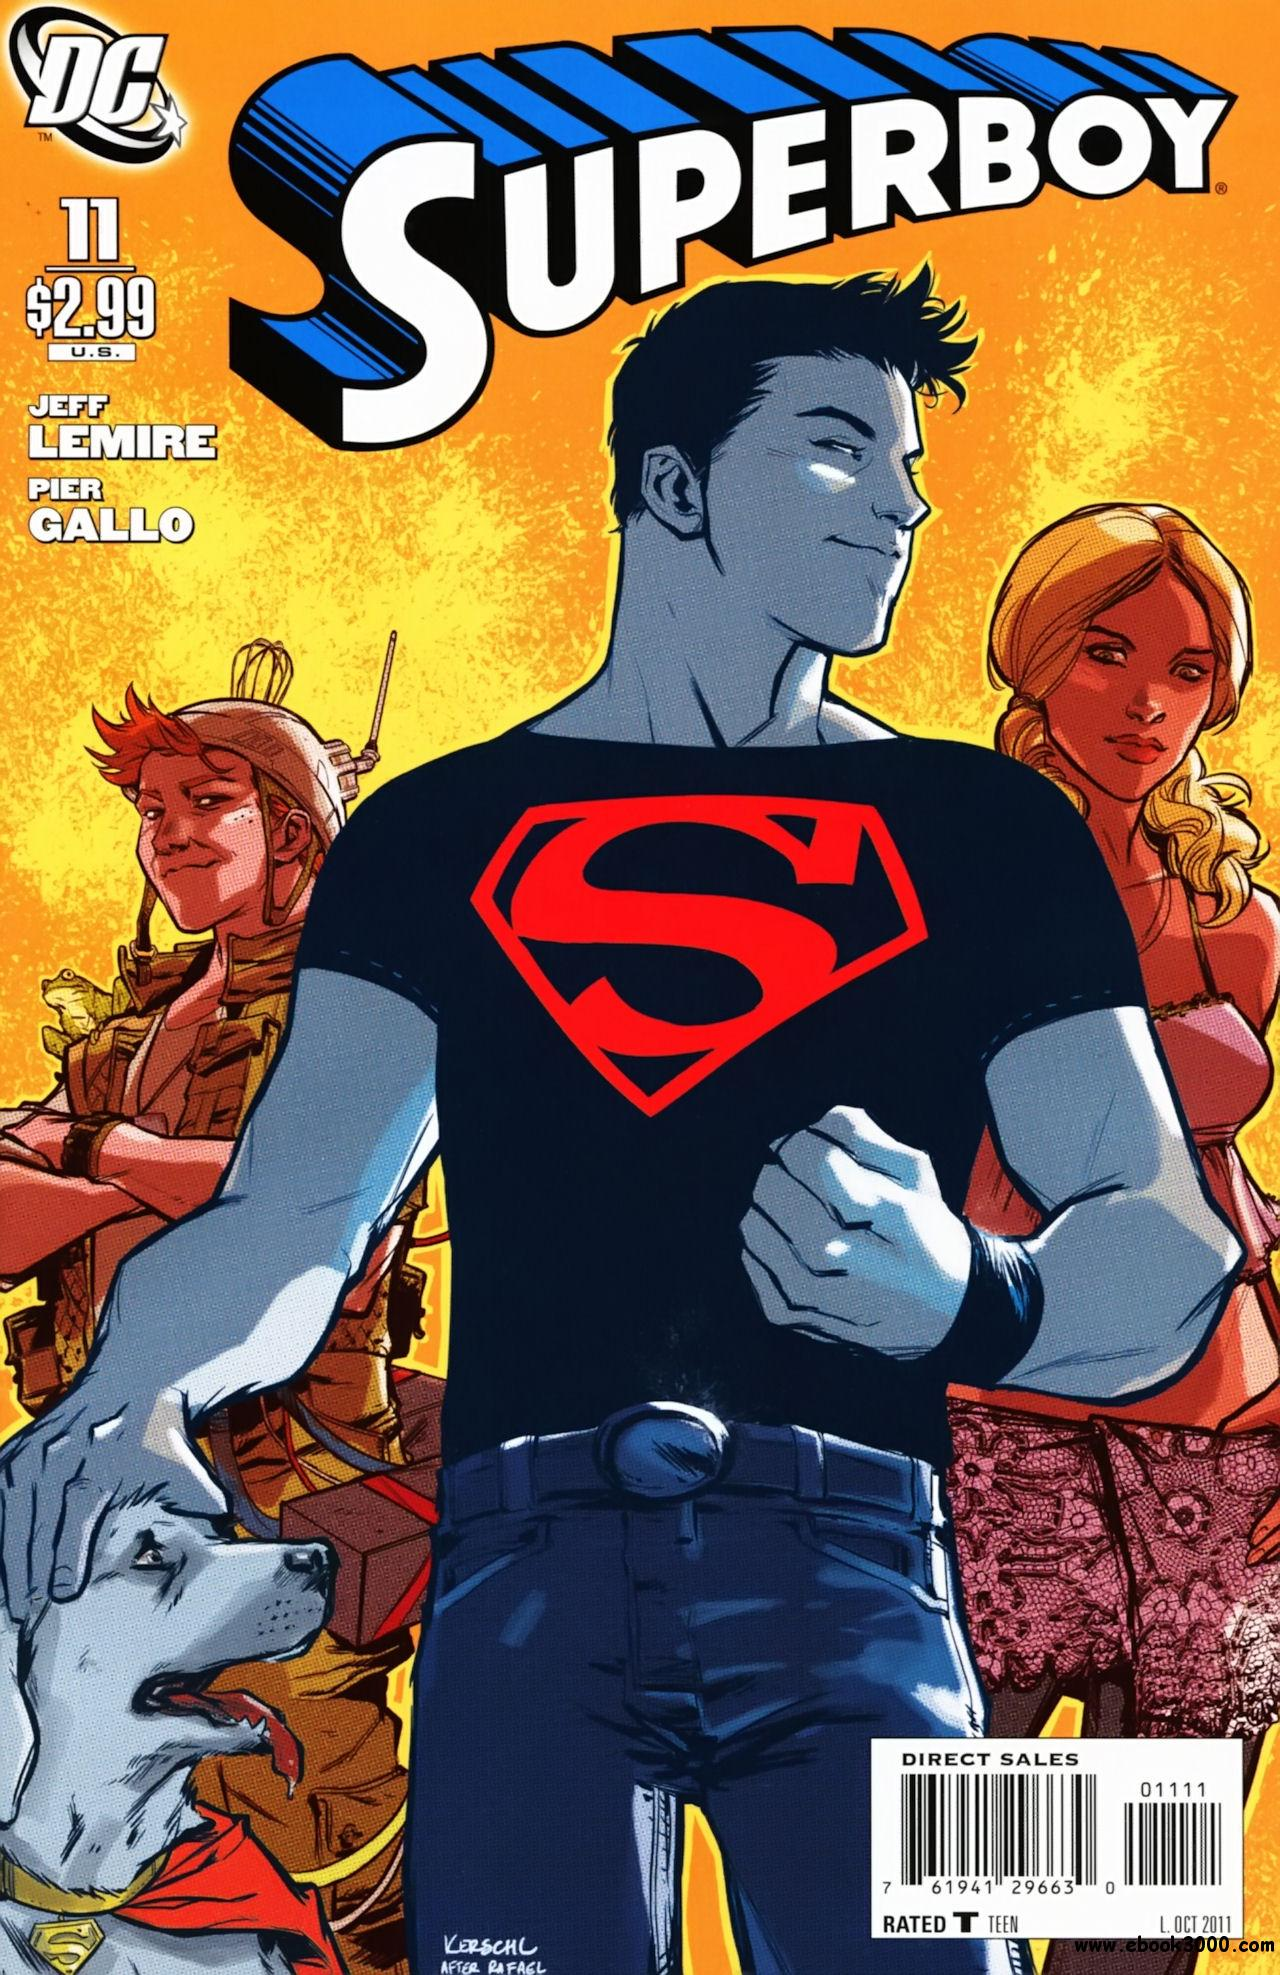 Superboy #11 (2011) free download